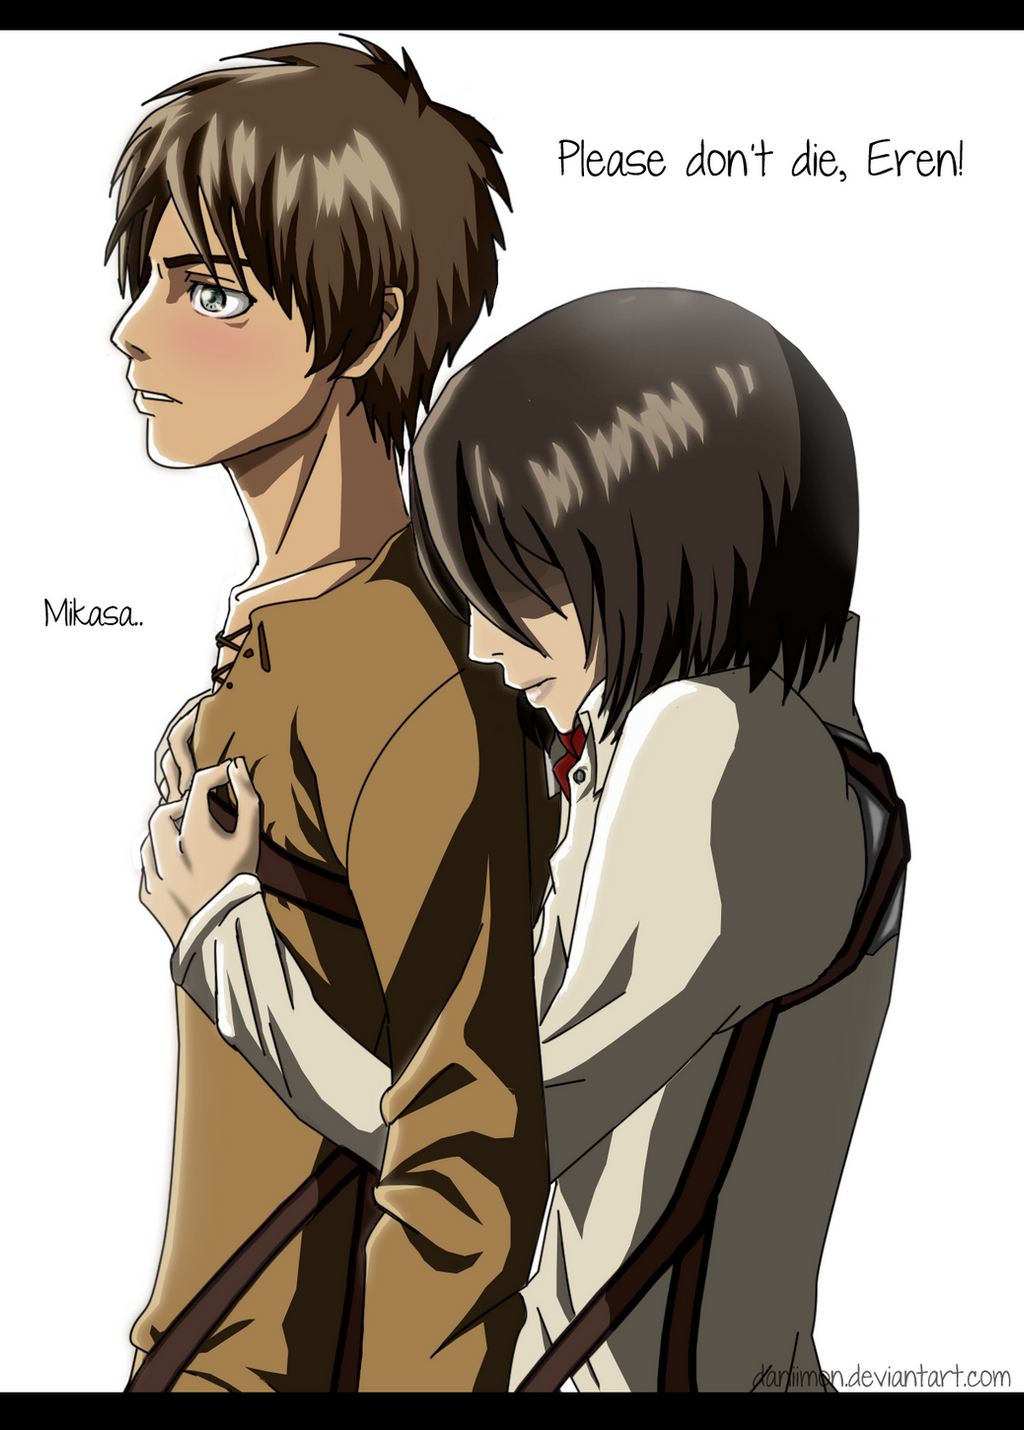 attack on titan mikasa and eren relationship quiz